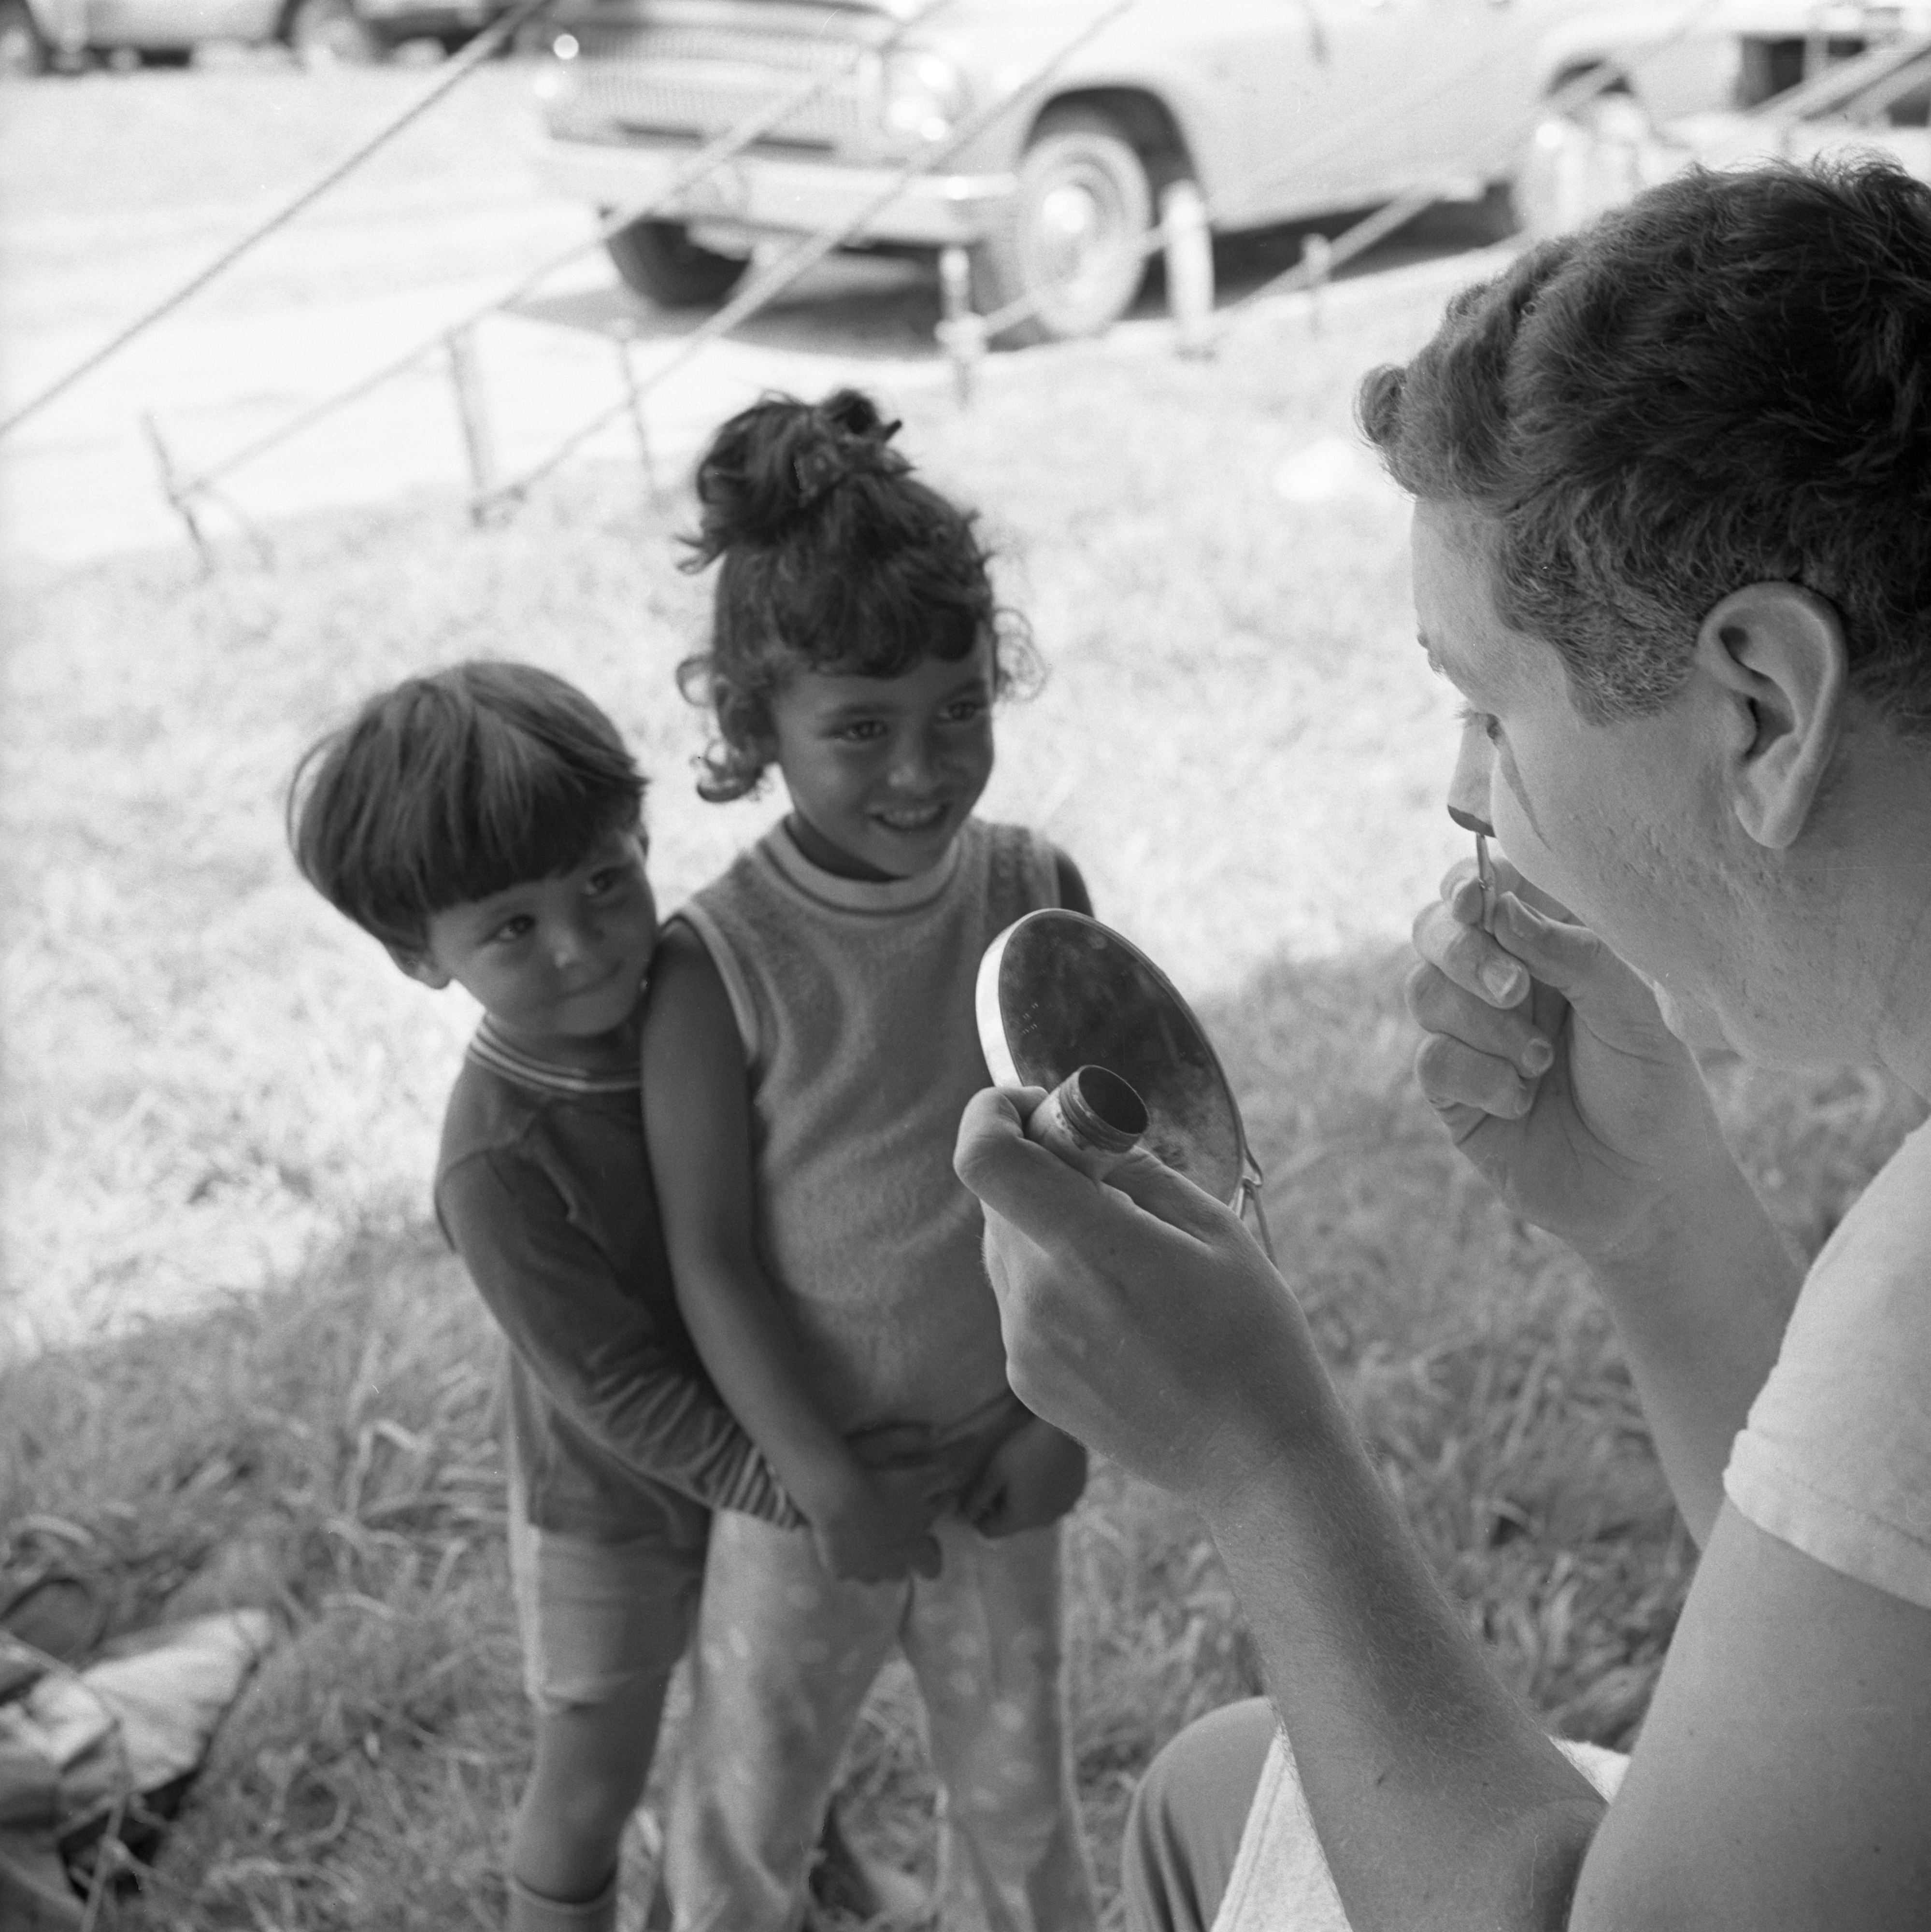 Kids Watch Clown Gets Ready For The Clyde-Beatty Cole Brothers Circus, August 8, 1968 image